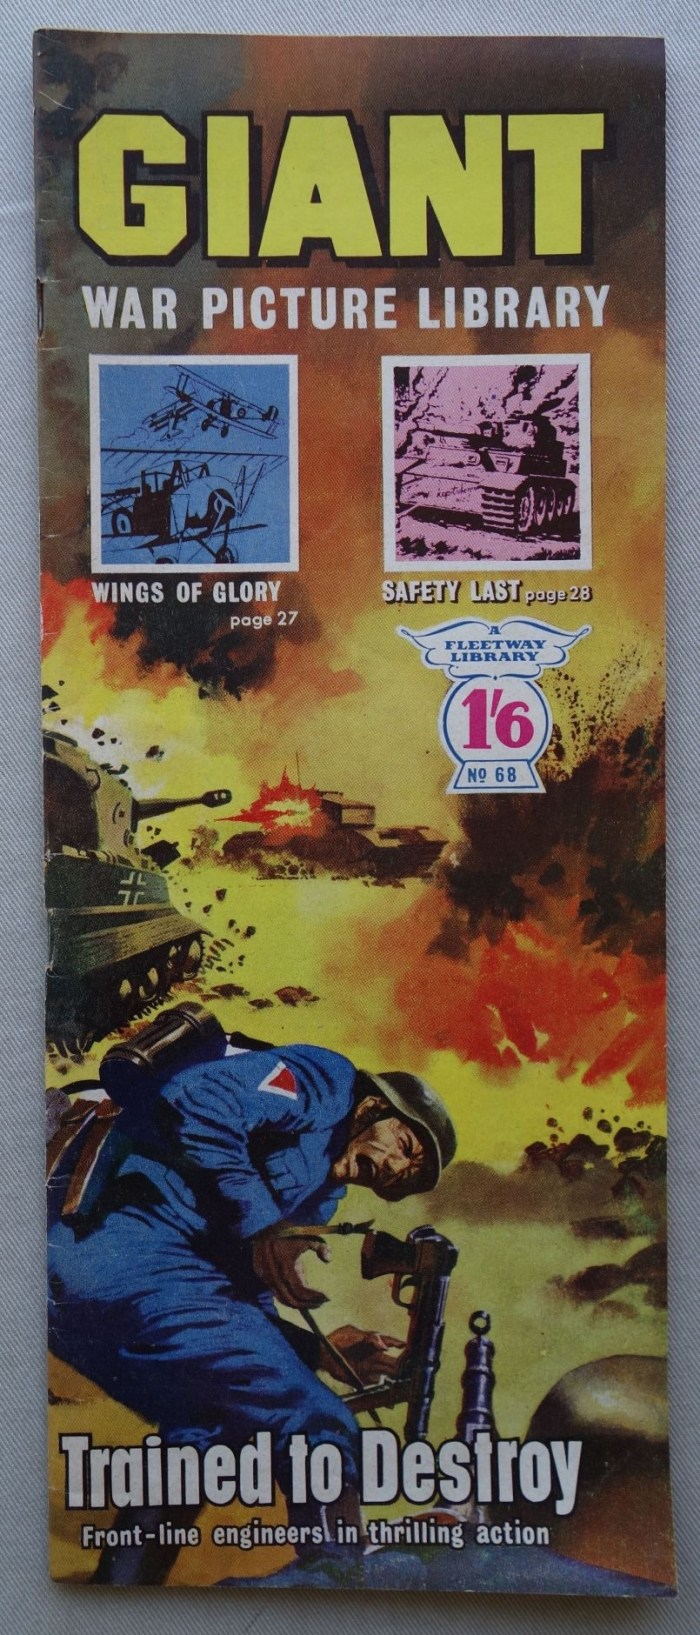 Giant War Picture Library Issue 68 (1965)